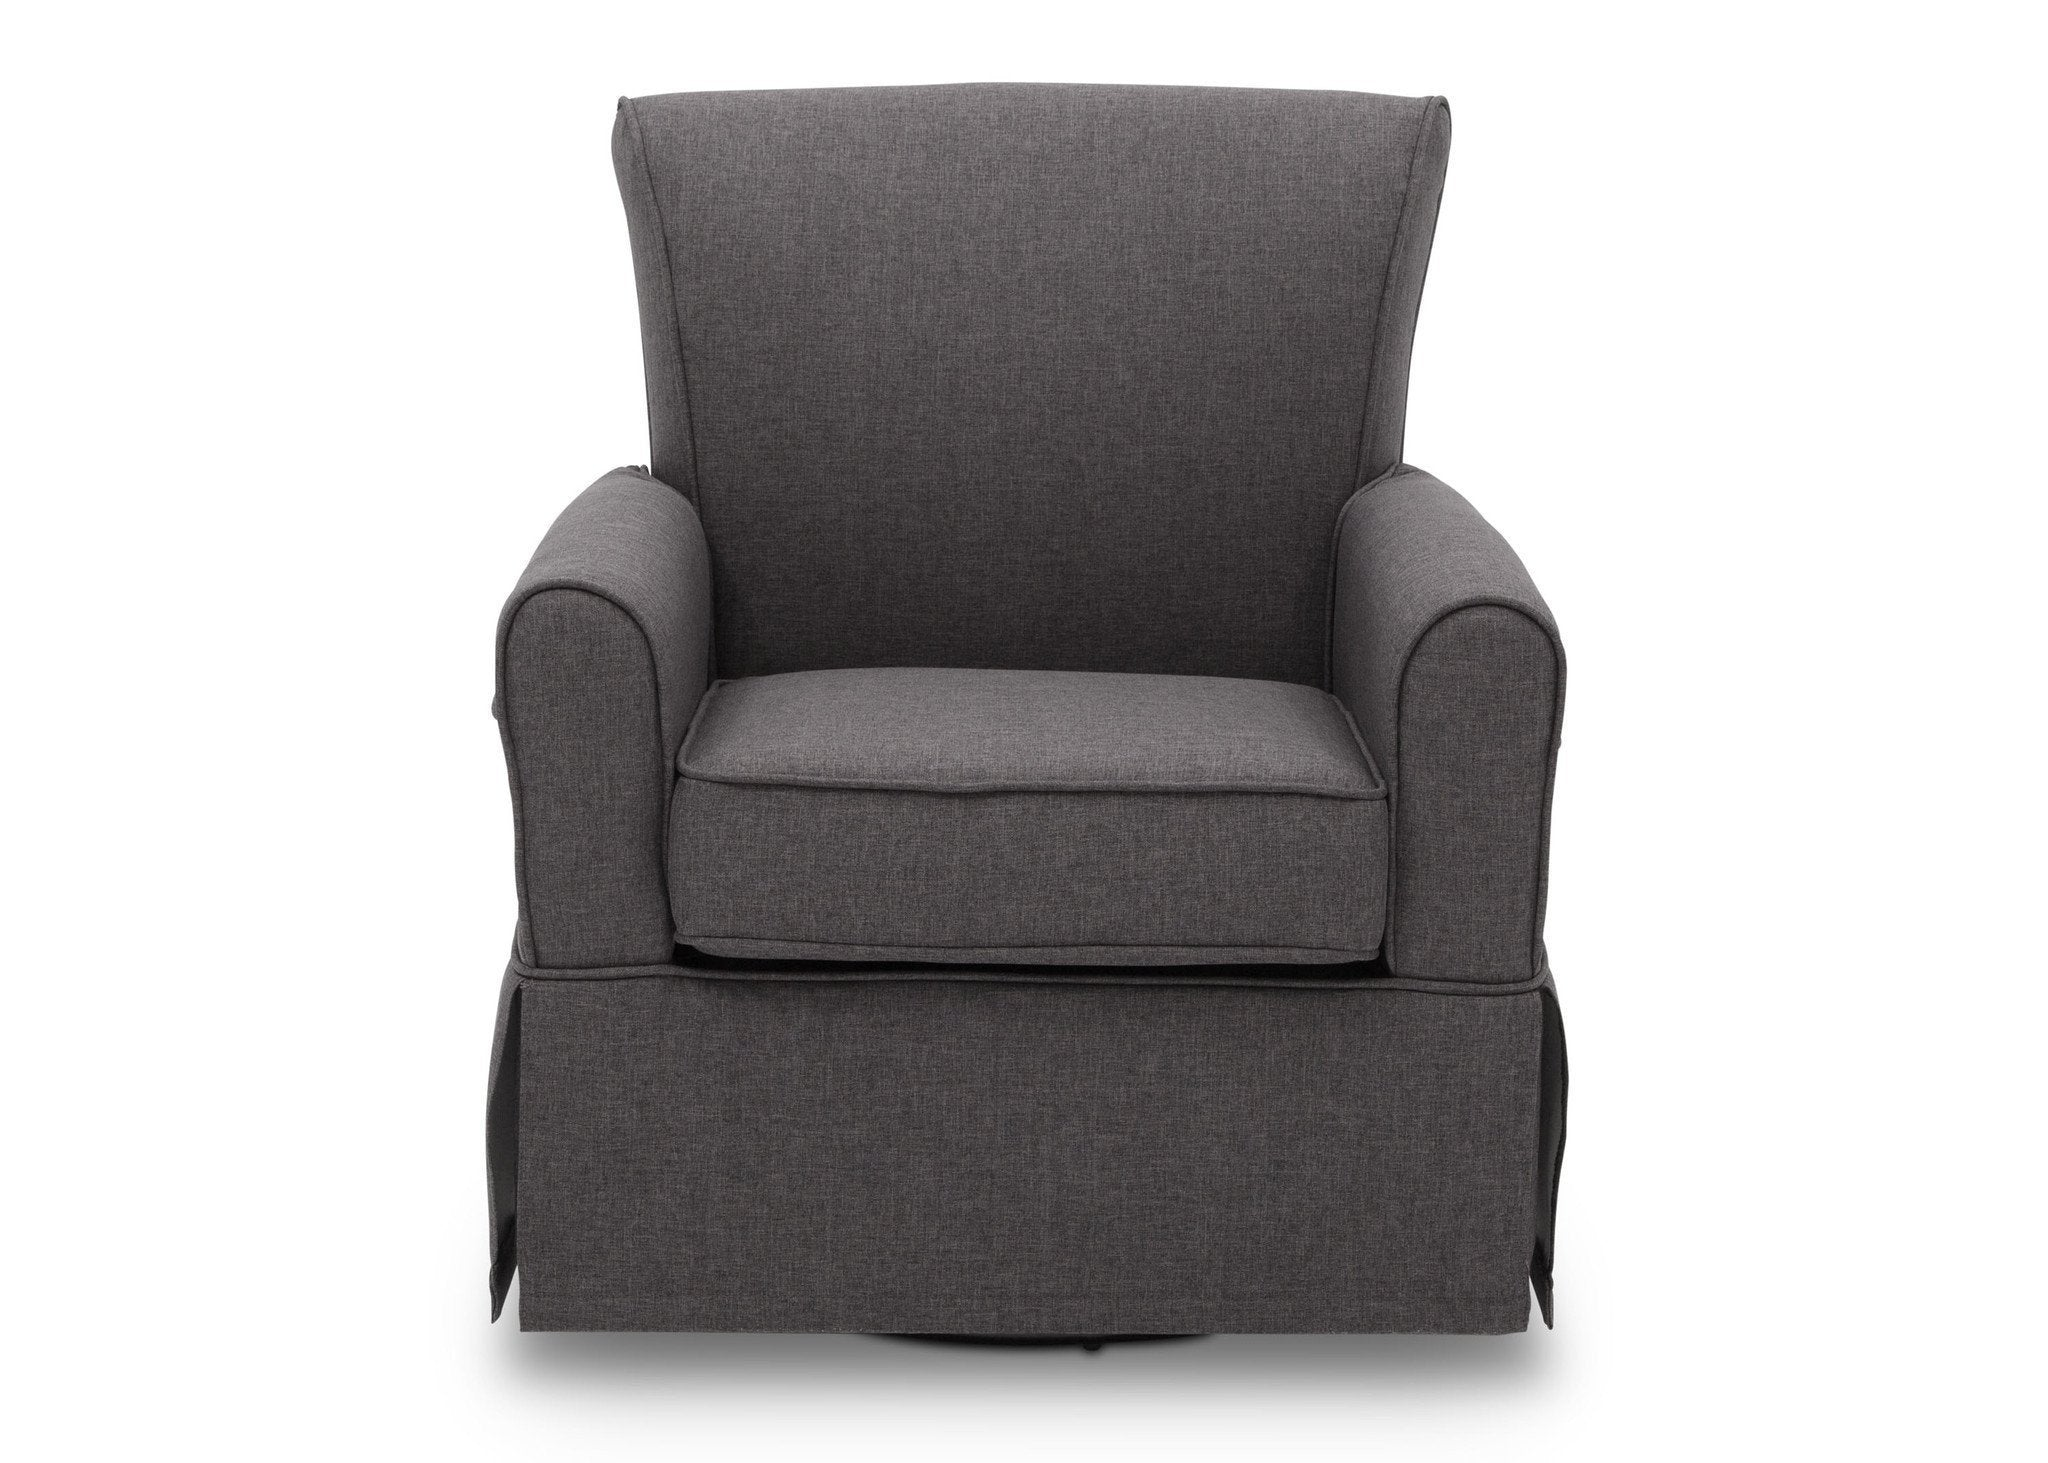 Delta Children Charcoal Grey (931) Epic Glider, Front View, e2e